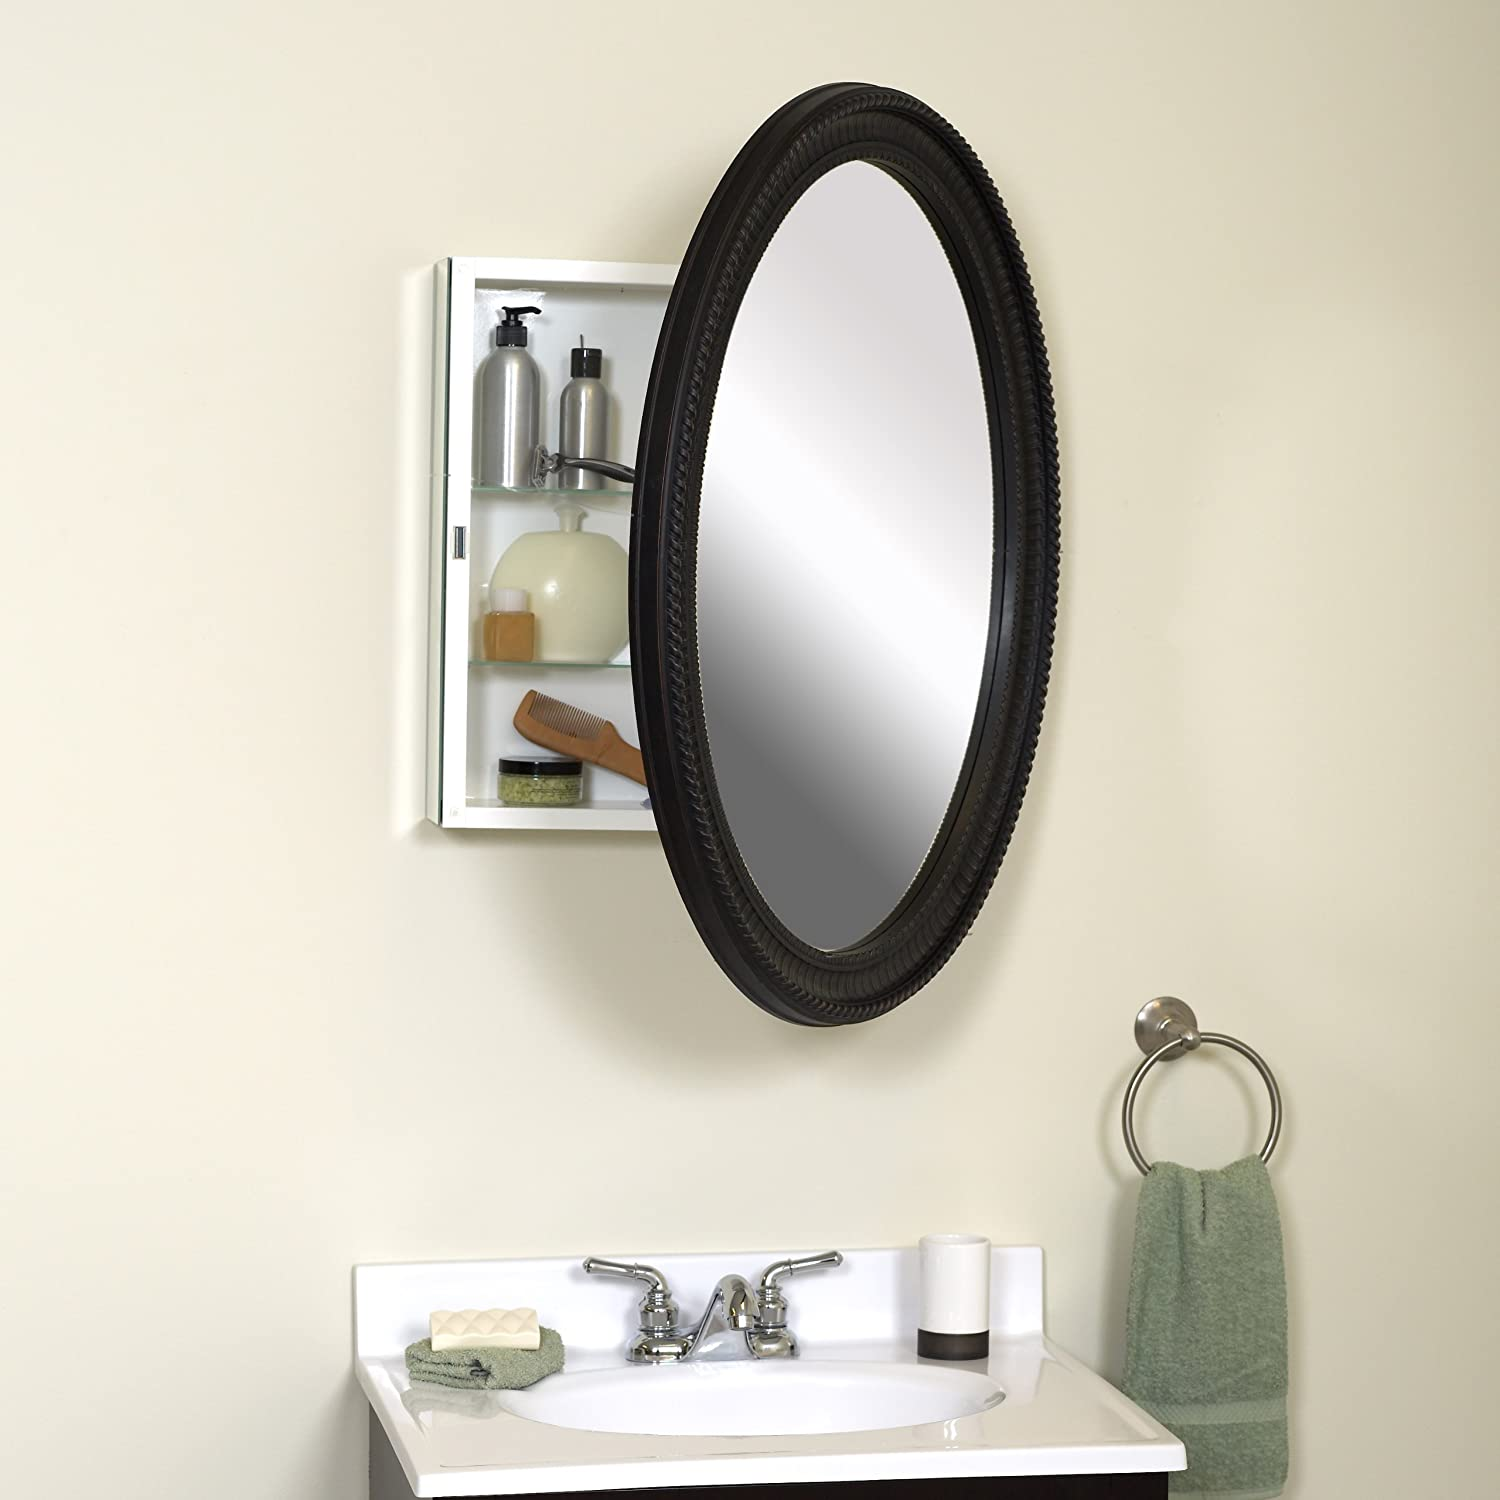 Beautiful Amazon.com: Zenith BMV2532BB, Oval Mirror Medicine Cabinet, Oil Rubbed  Bronze Frame: Home U0026 Kitchen